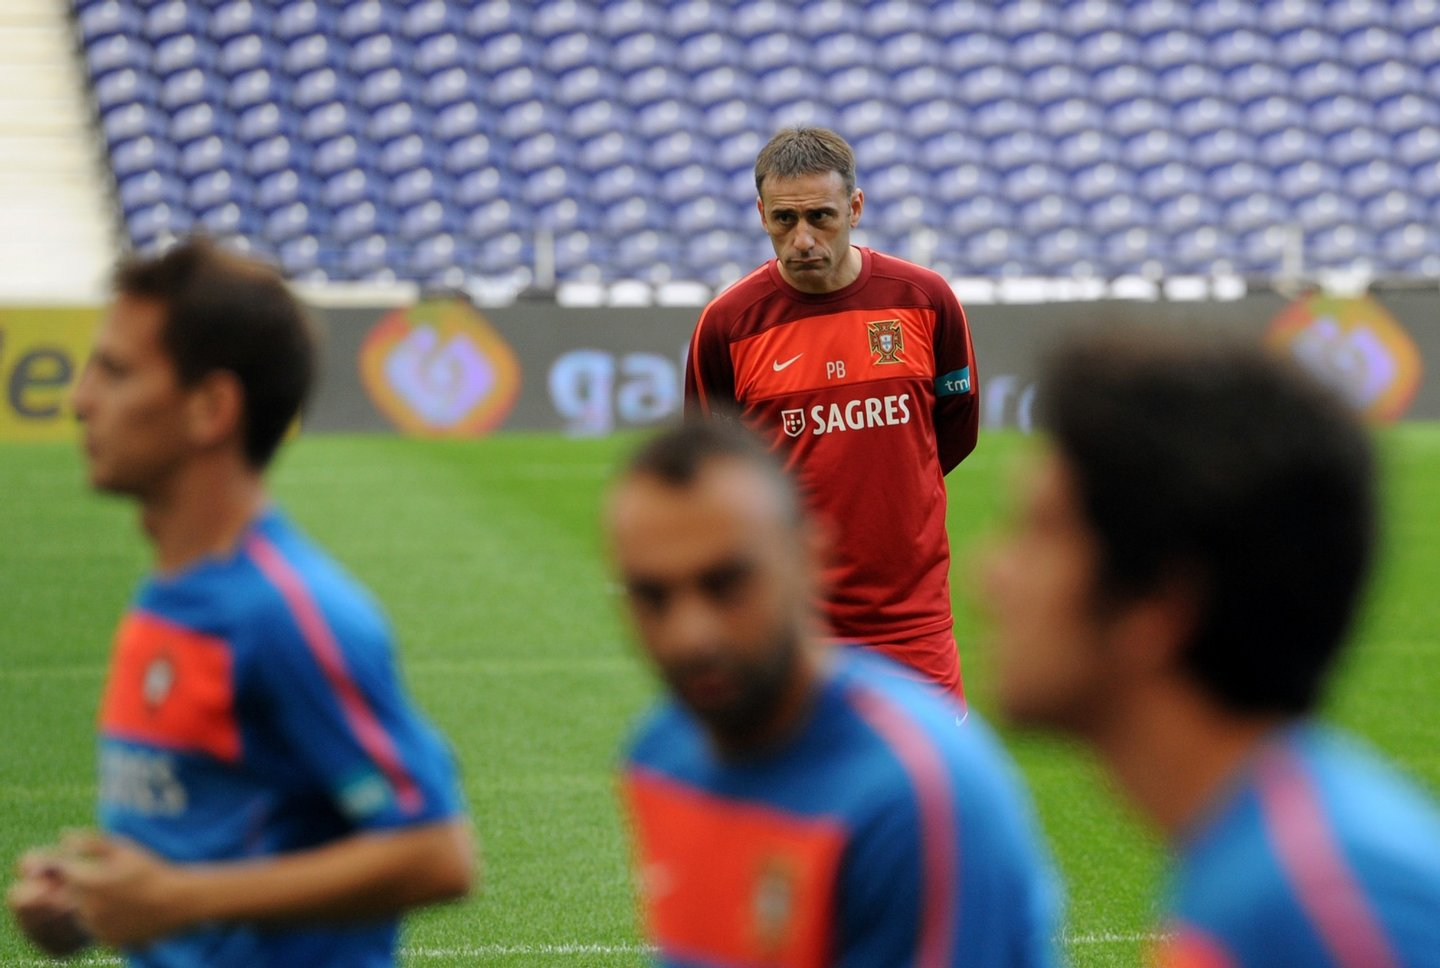 Portugal's coach Paulo Bento (top) looks on as his players train at Dragao Stadium in Porto on October 7, 2010, on the eve of their EURO 2010 qualifyer football match against Denmark. AFP PHOTO/ FRANCISCO LEONG (Photo credit should read FRANCISCO LEONG/AFP/Getty Images)